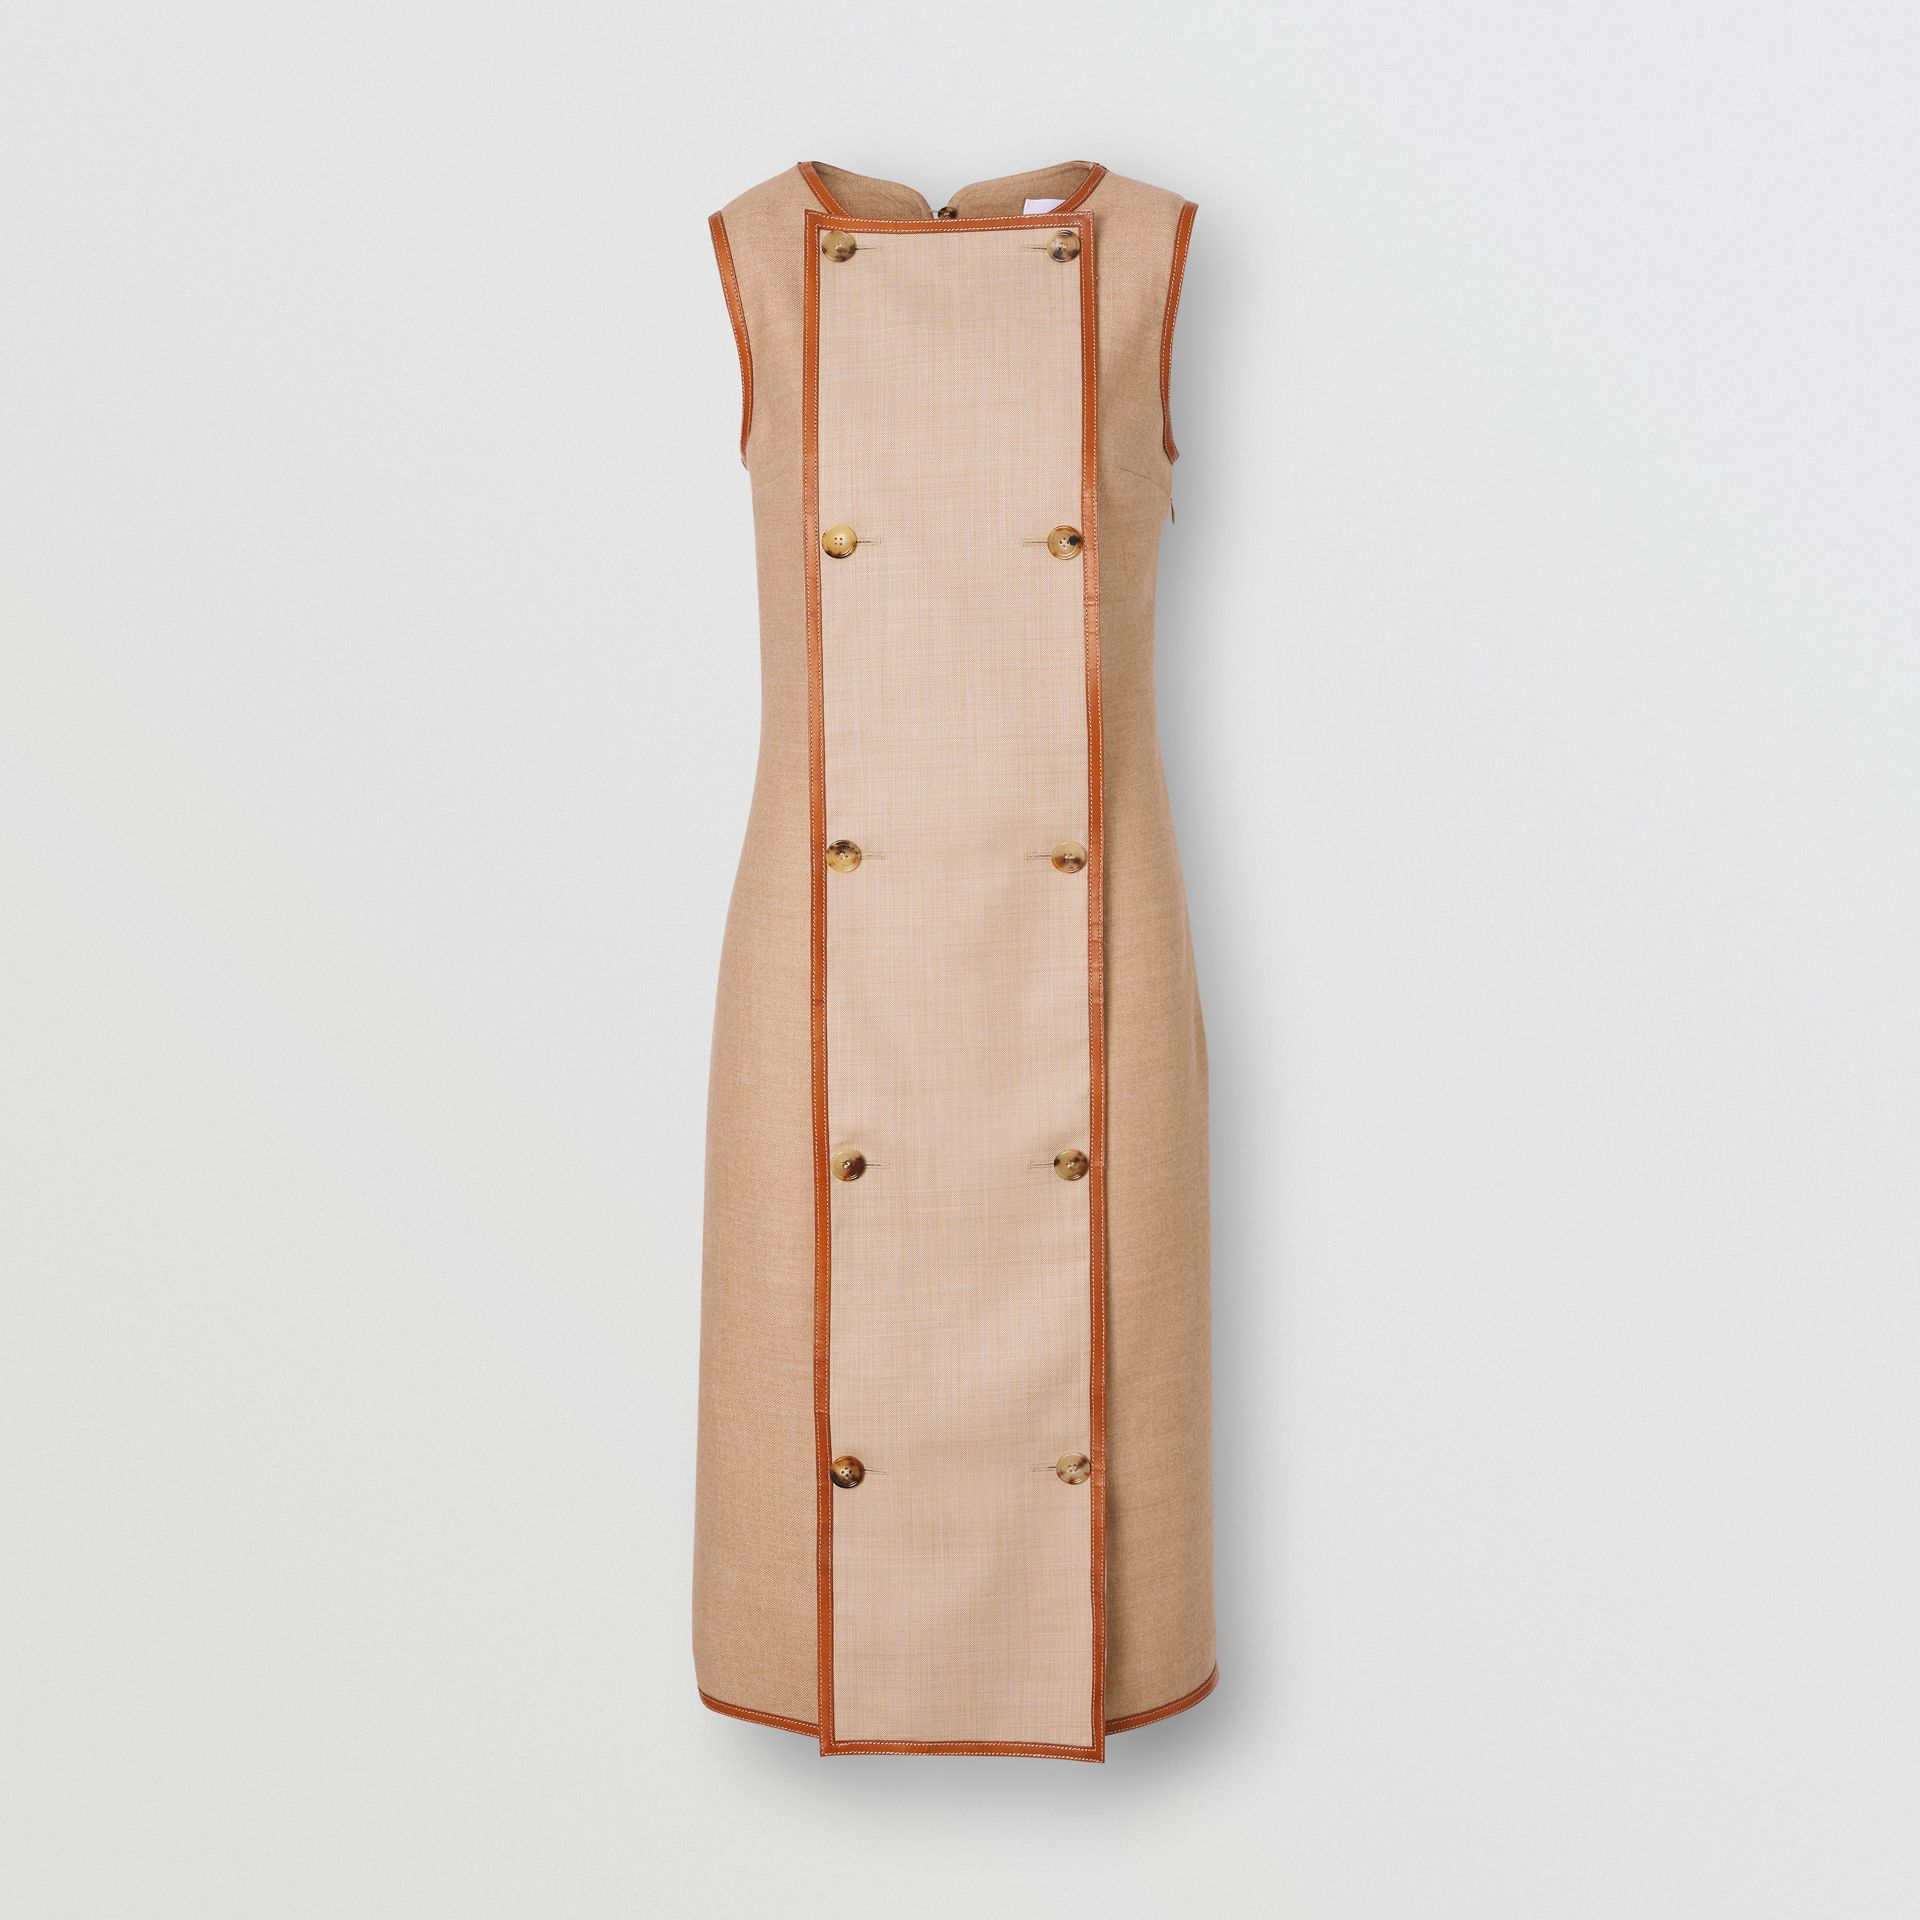 Button Panel Detail Wool Blend Shift Dress in Biscuit - Women | Burberry Hong Kong S.A.R - gallery image 3